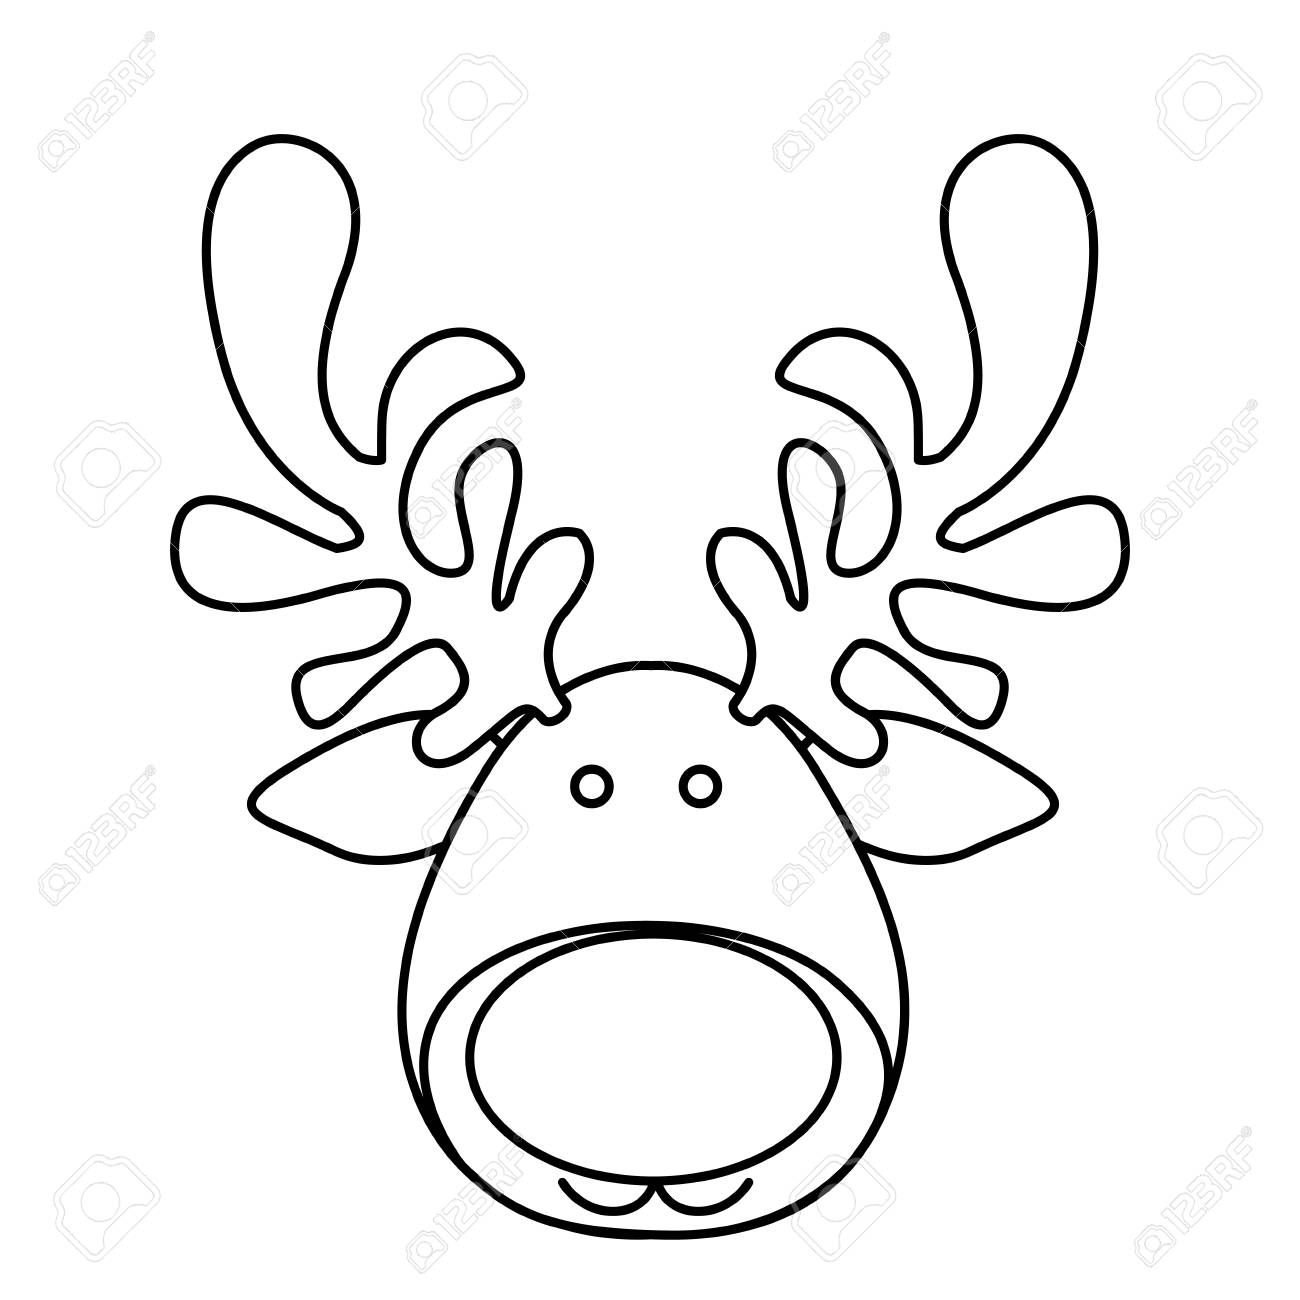 1300x1300 Silhouette Cartoon Funny Face Reindeer Animal Vector Illustration